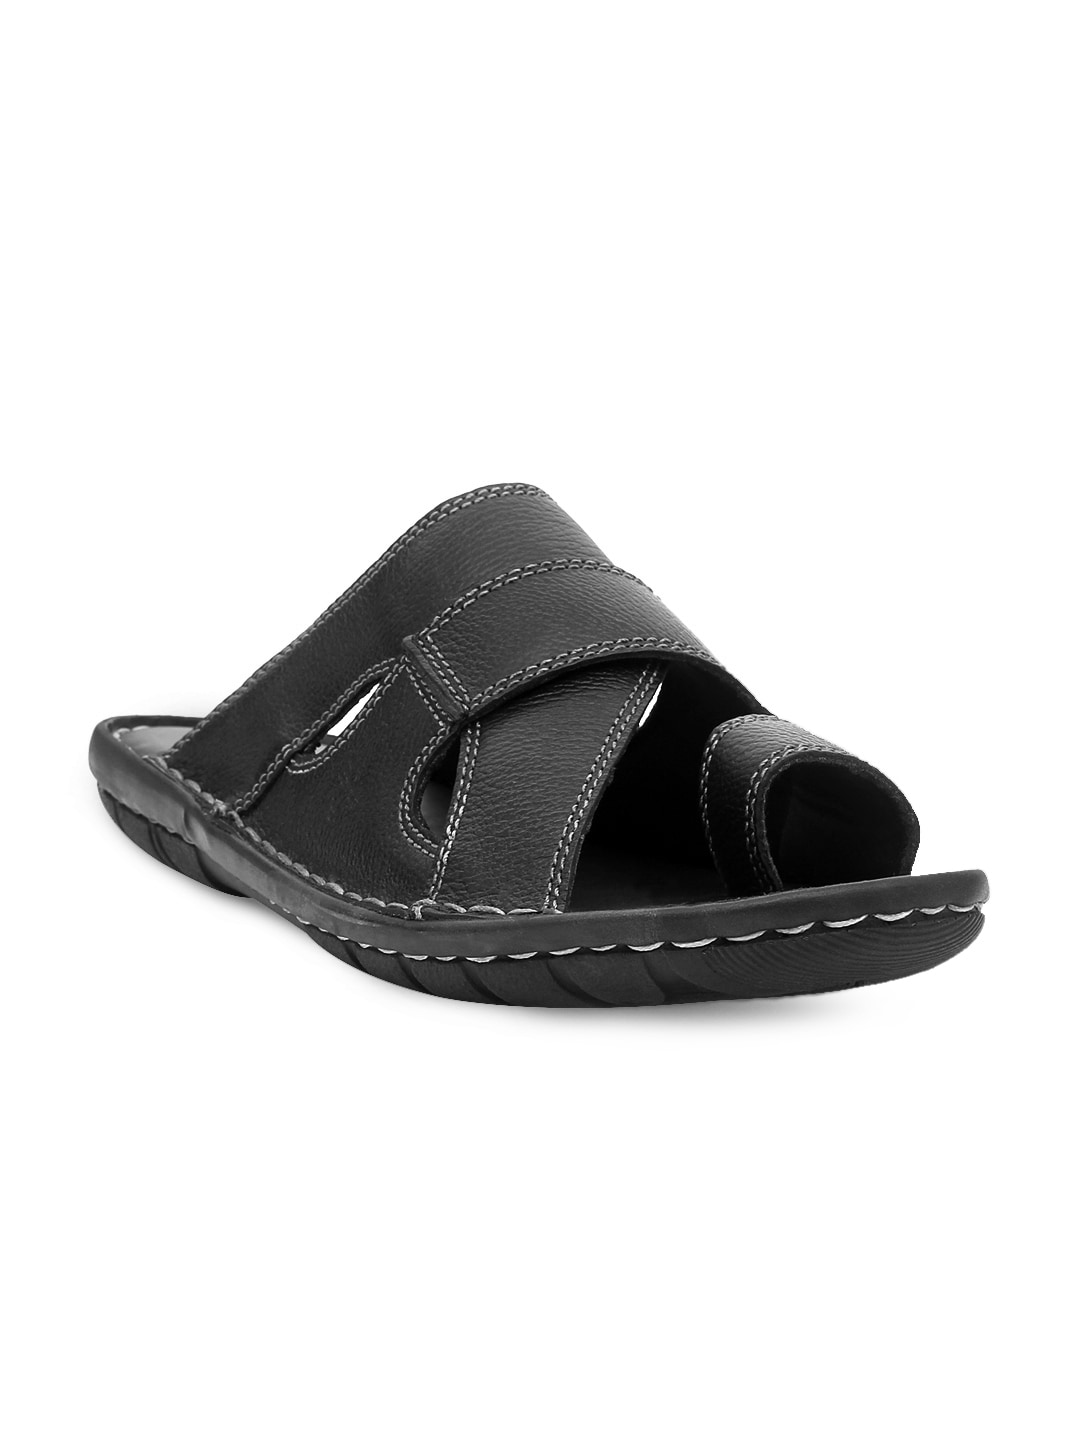 a1ec457f95e5 Black Sandals - Buy Black Sandals Online in India